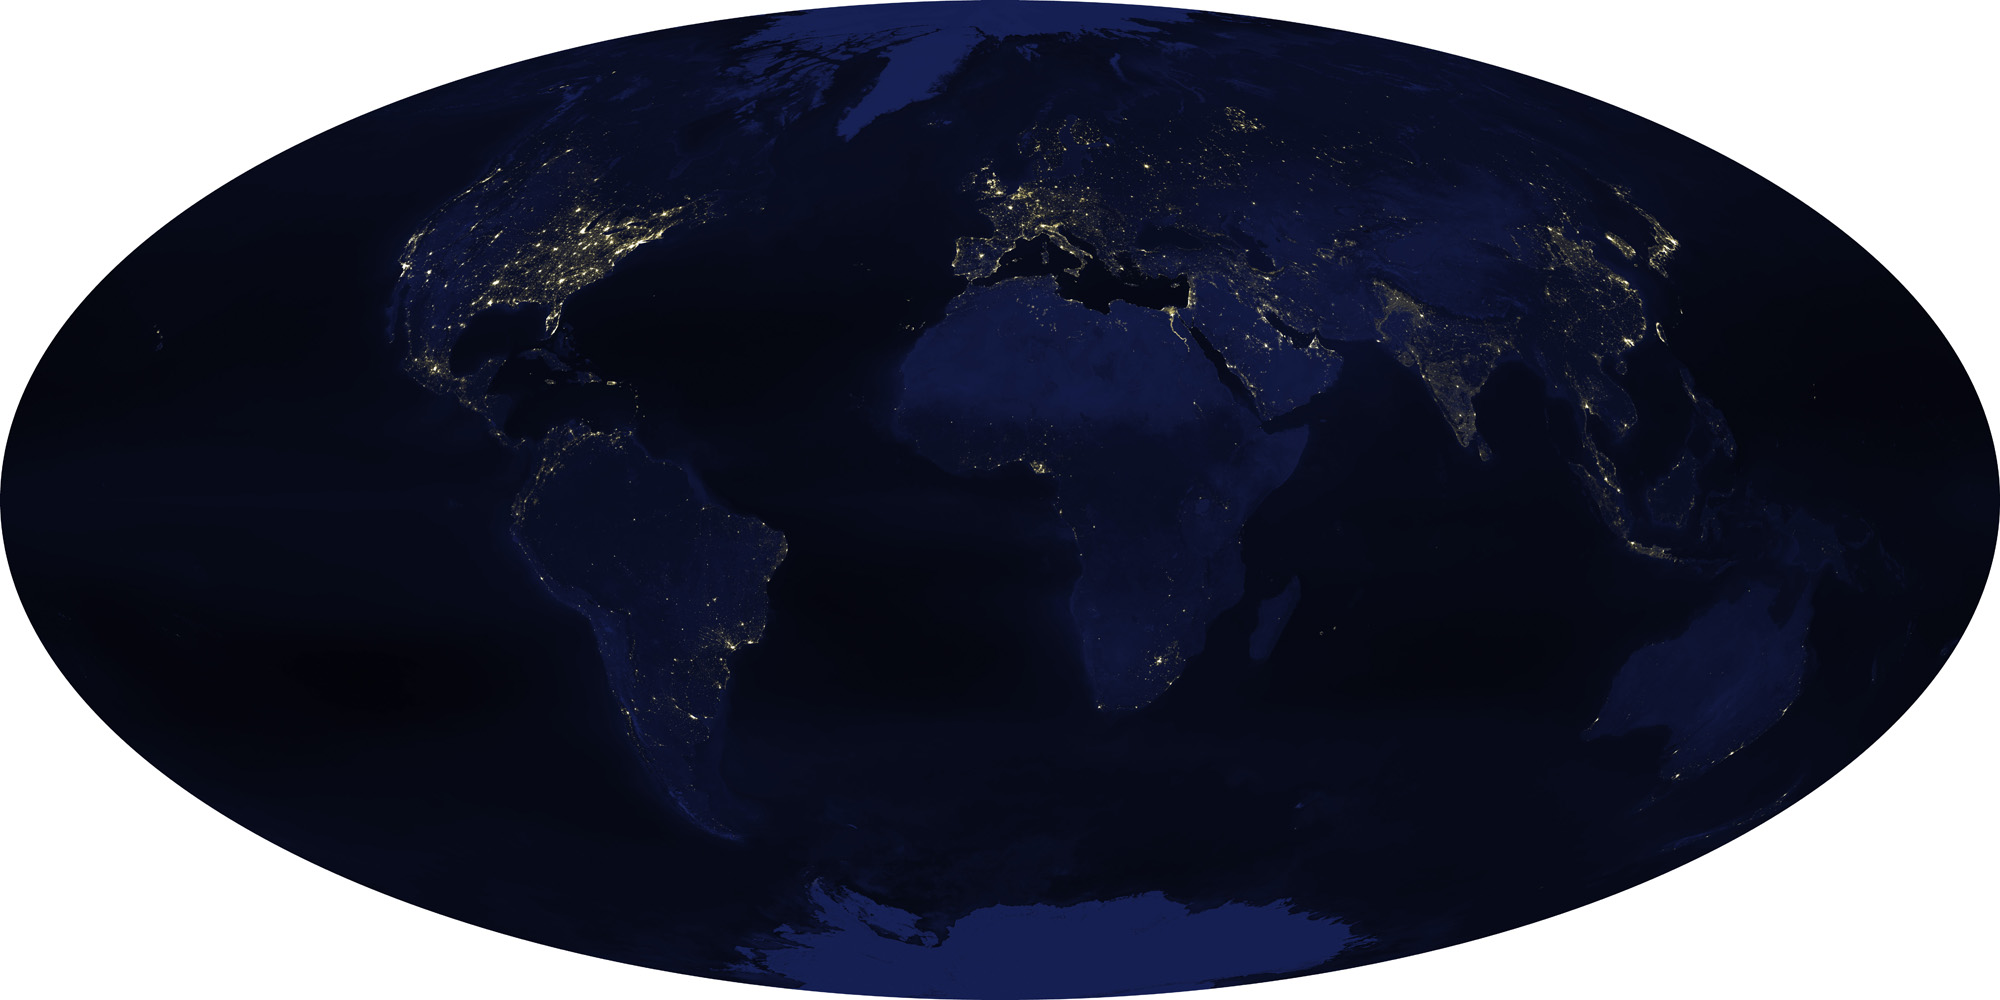 Earth's City Lights: 2003 Satellite View